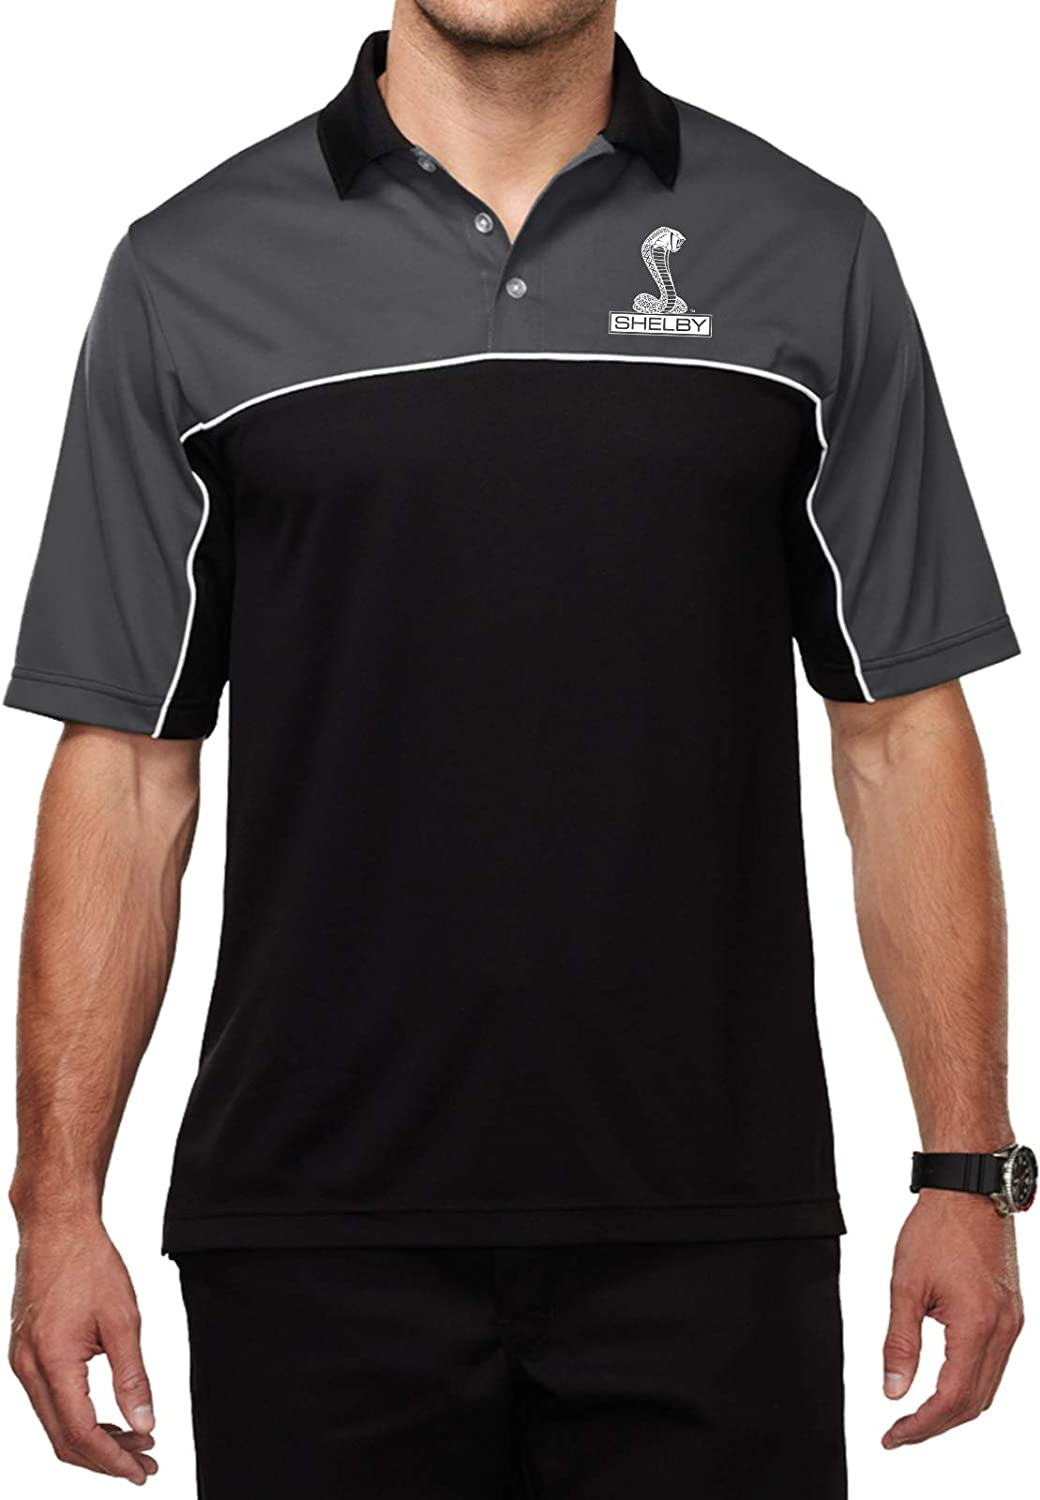 Ford Shelby Cobra Pocket Print Mens Moisture Wicking Polo Charcoal XL